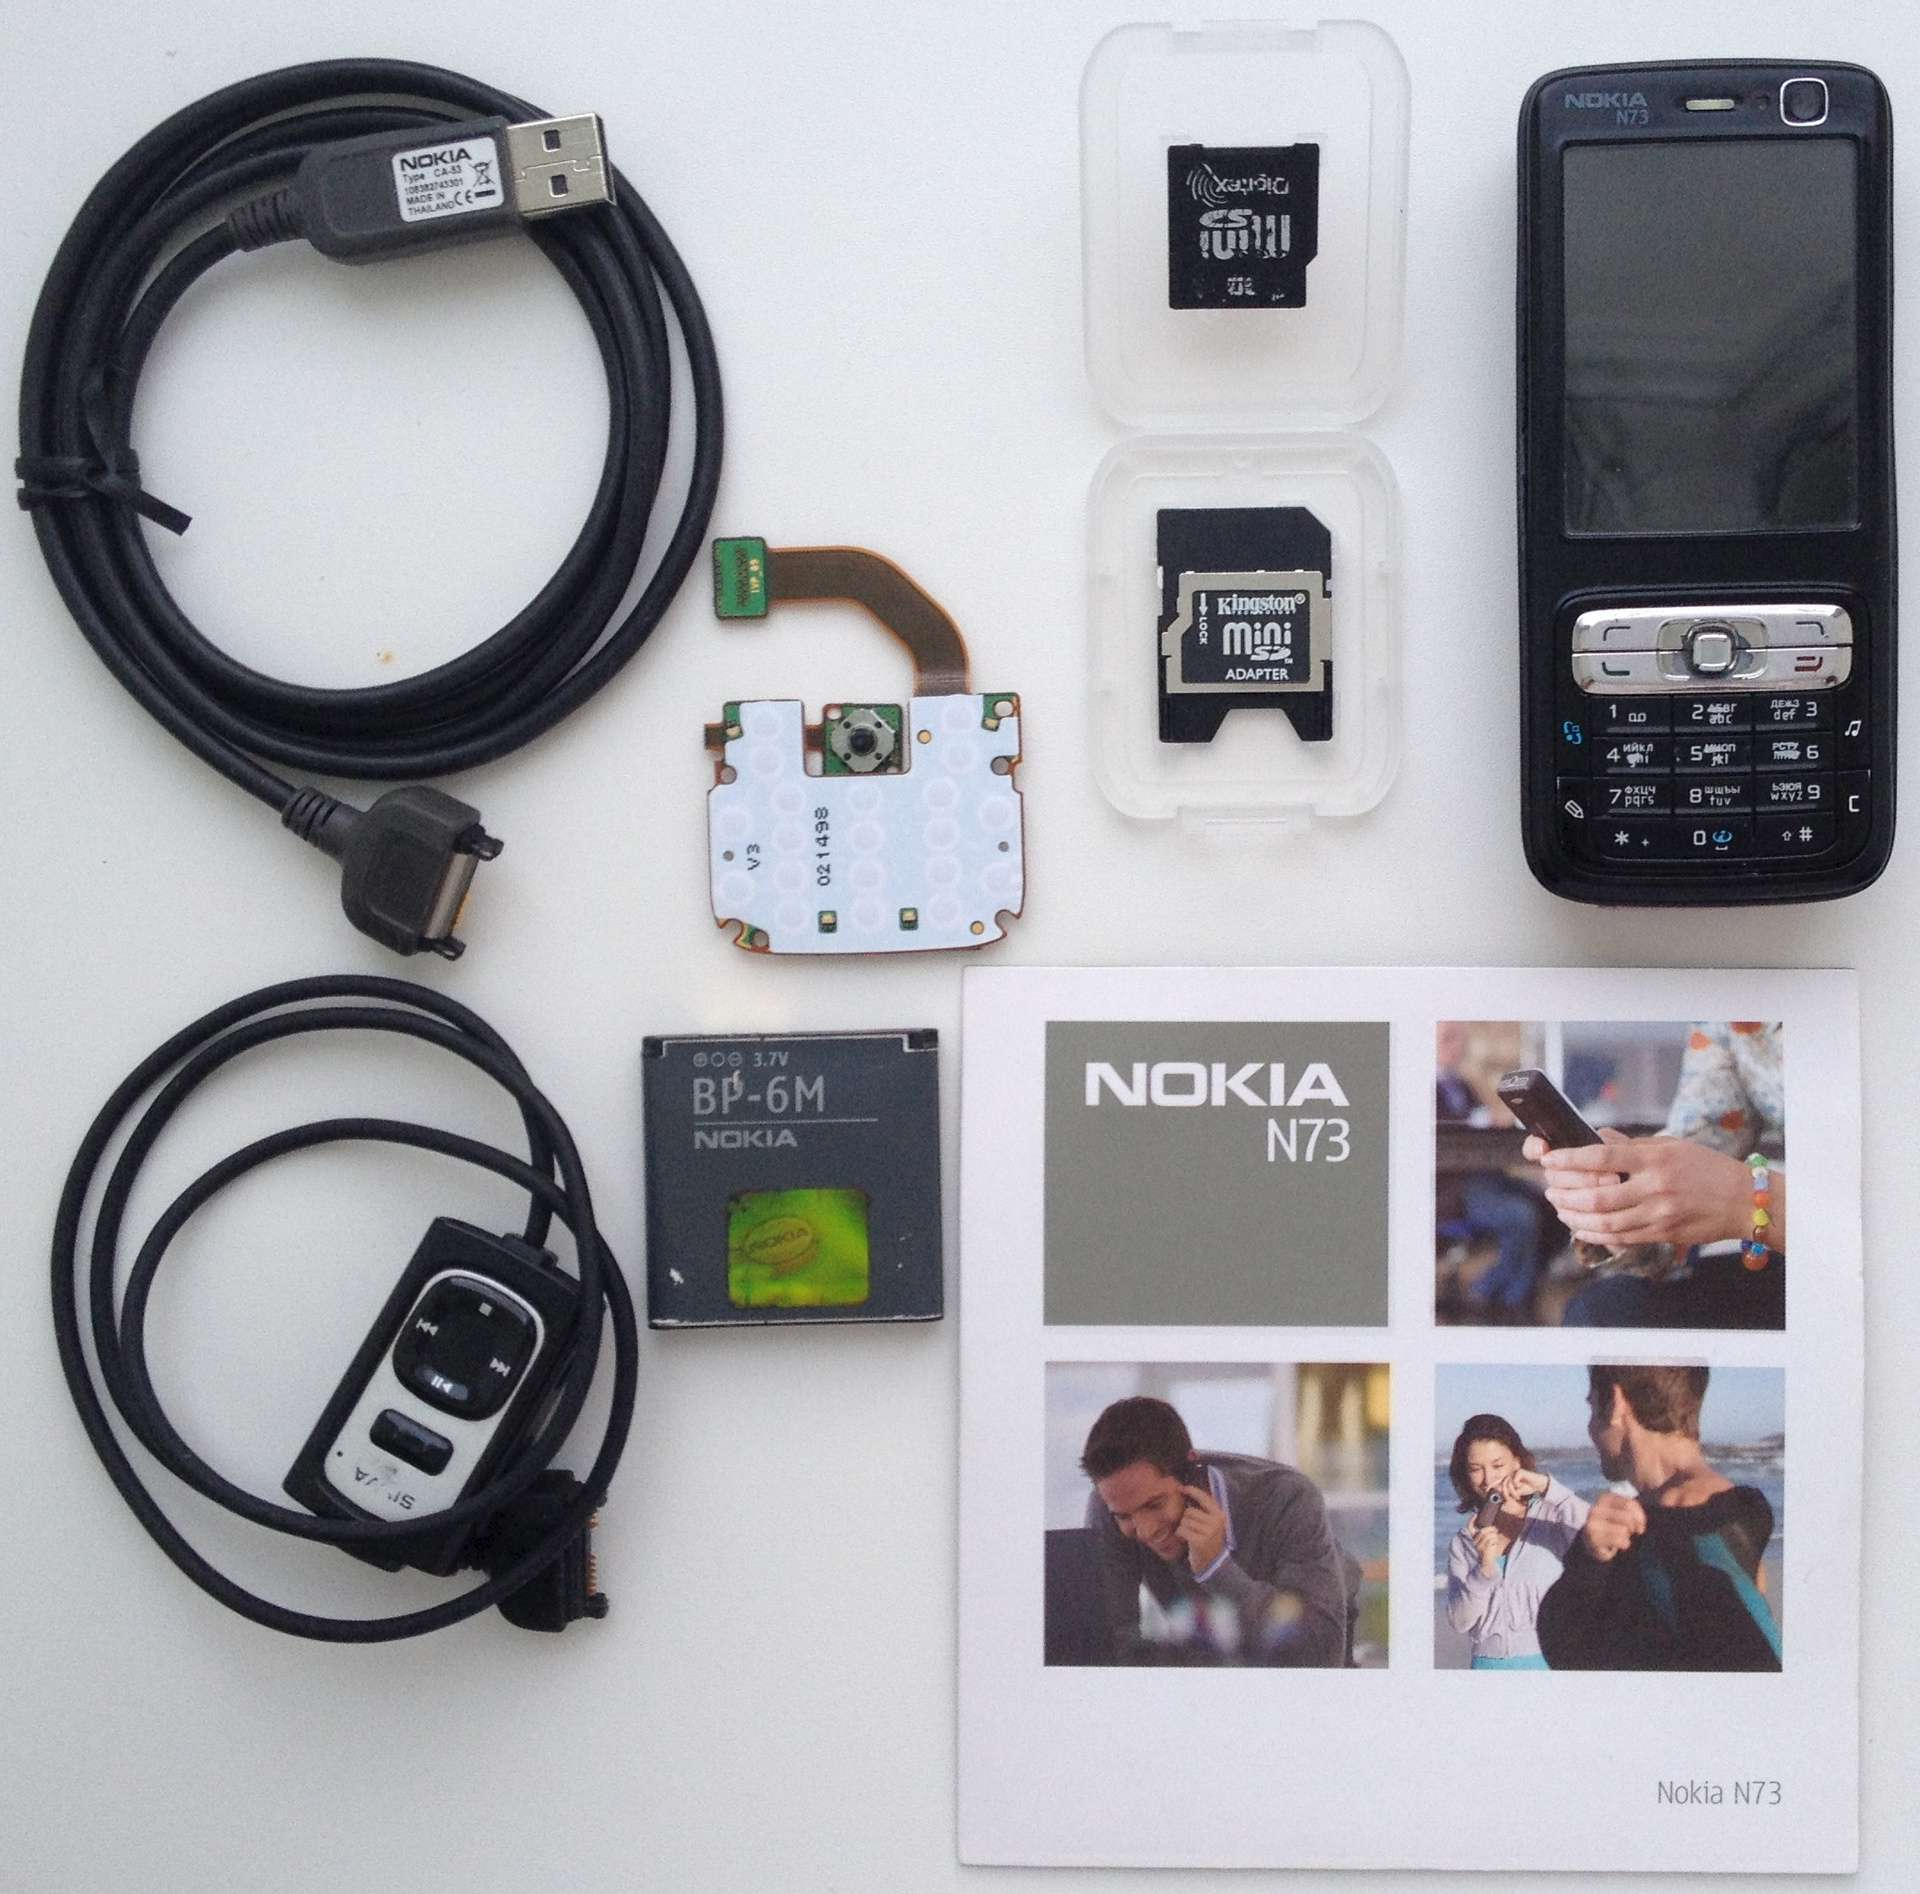 Nokia n-73 unlock official cell phone